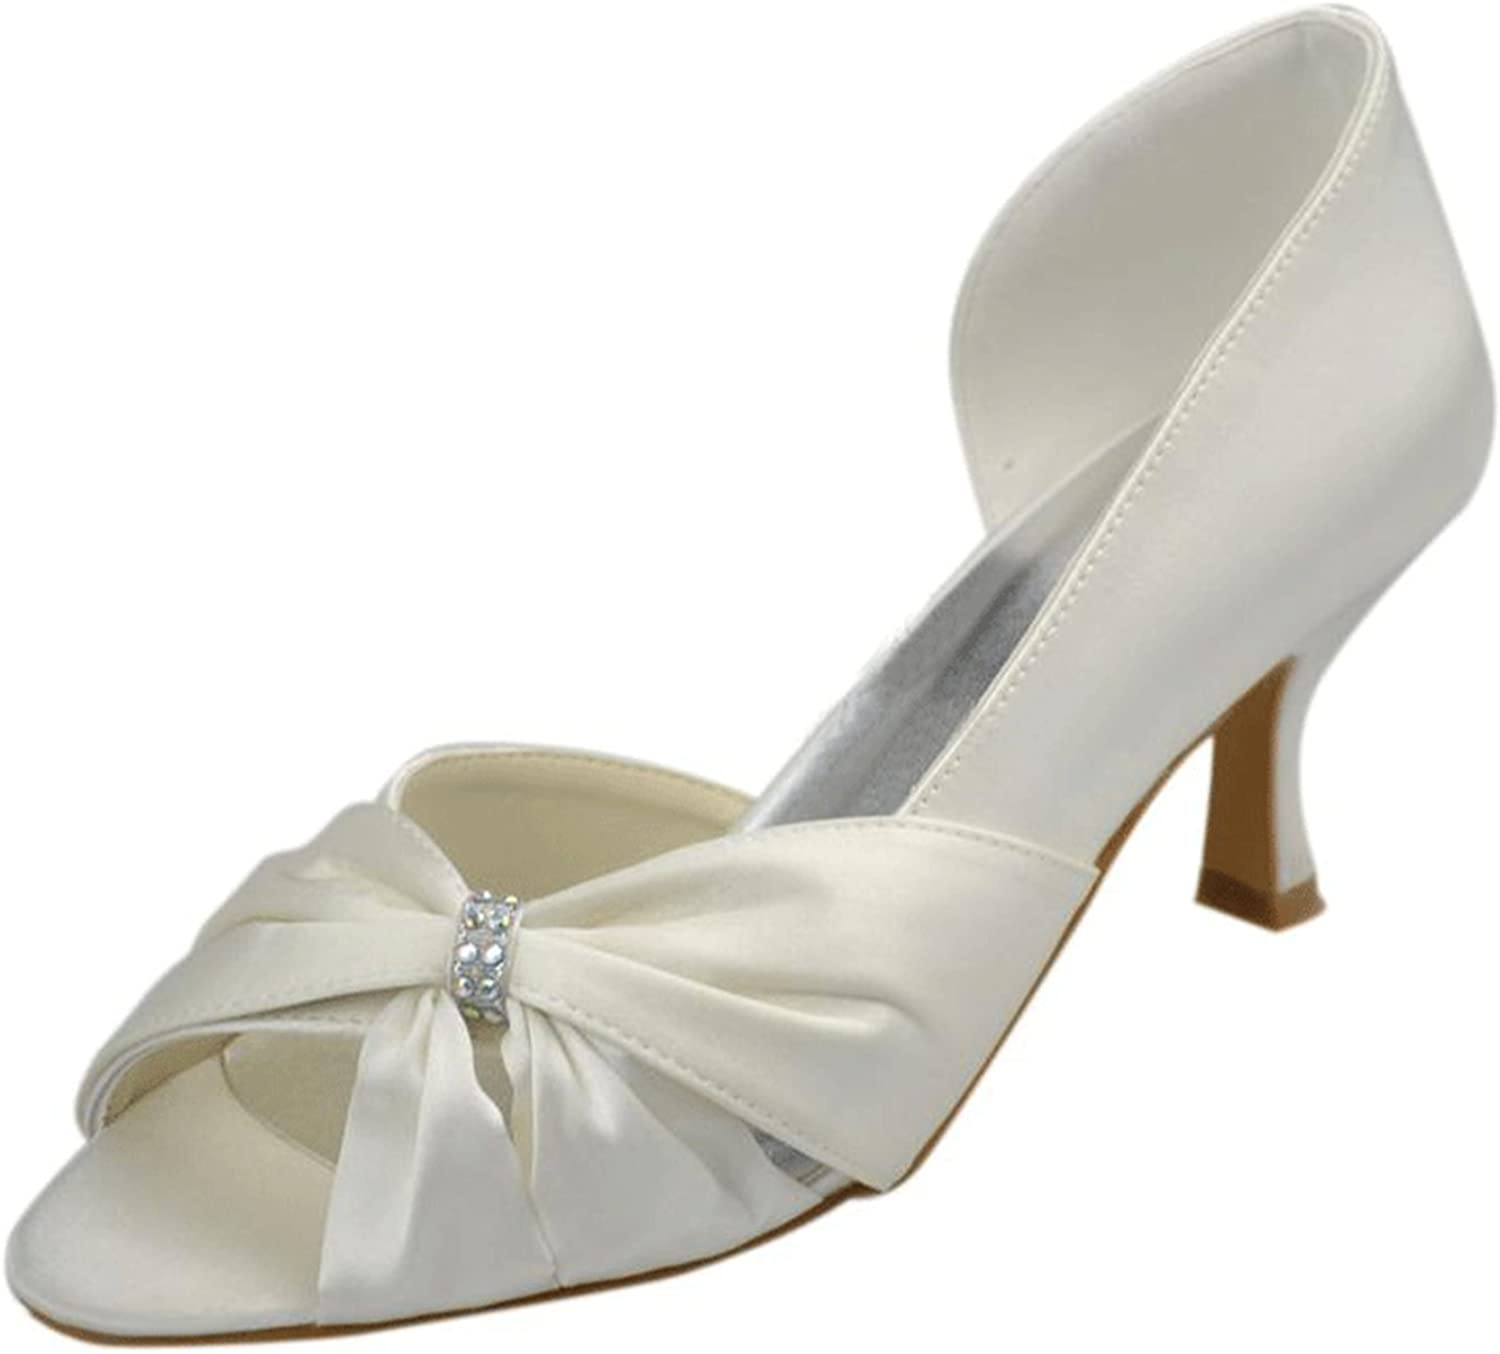 Kevin Fashion MZ1209 Women's Bow Satin Bridal Wedding Formal Party Evening Prom Sandals